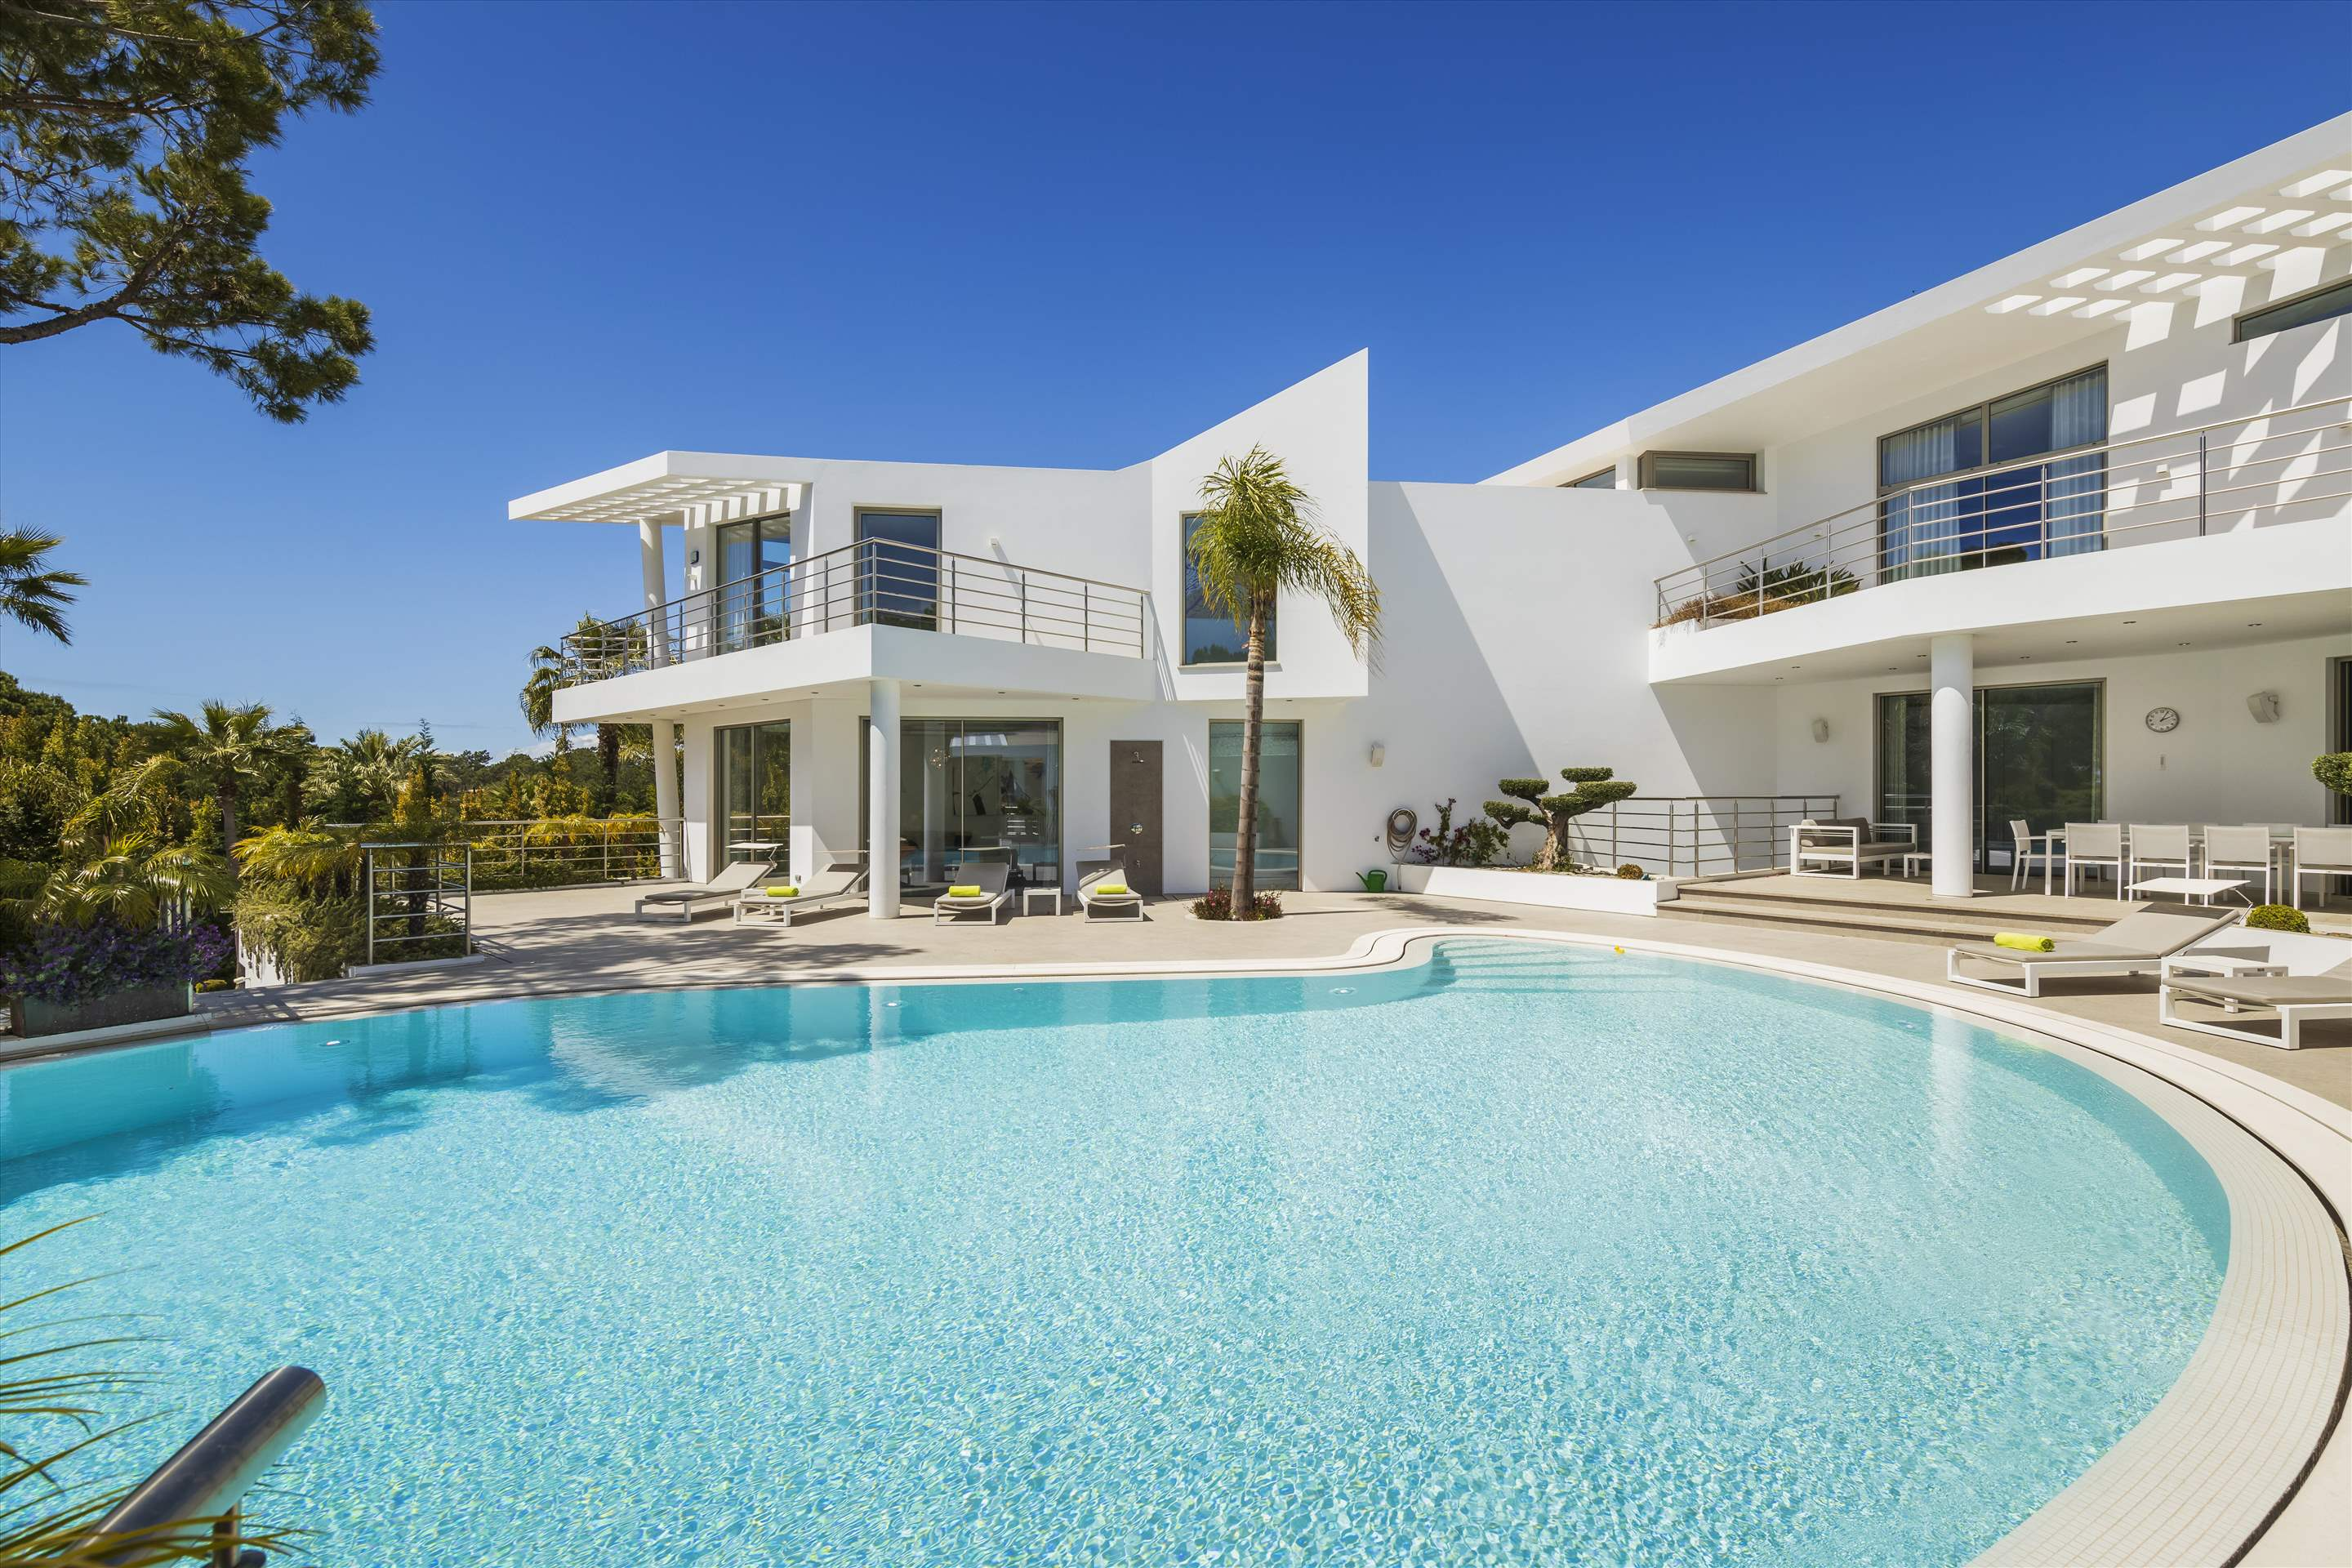 Villa Palm, 6 bedroom villa in Quinta do Lago, Algarve Photo #1